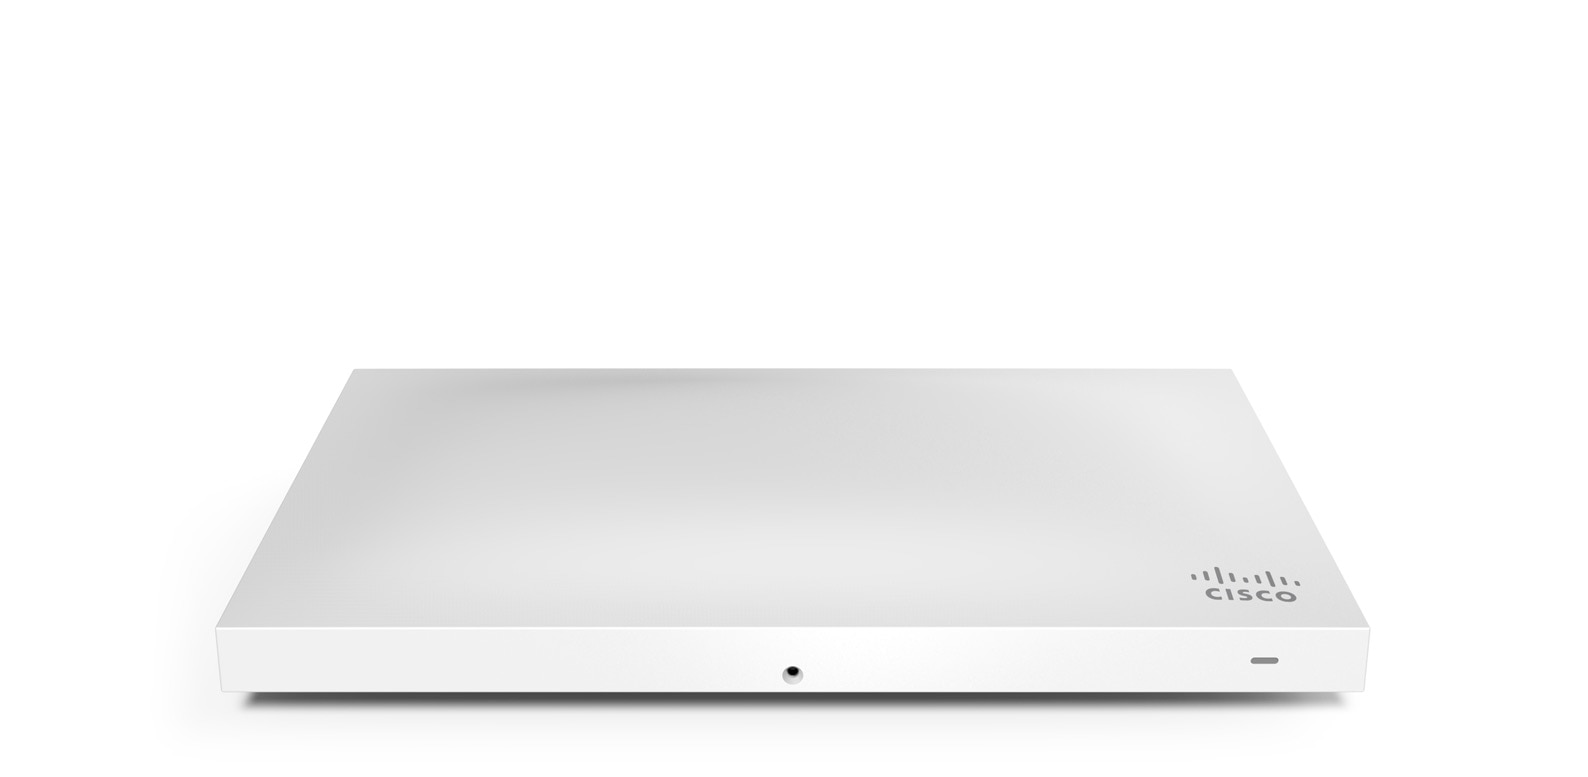 Cisco Meraki Cloud Managed Wireless Products